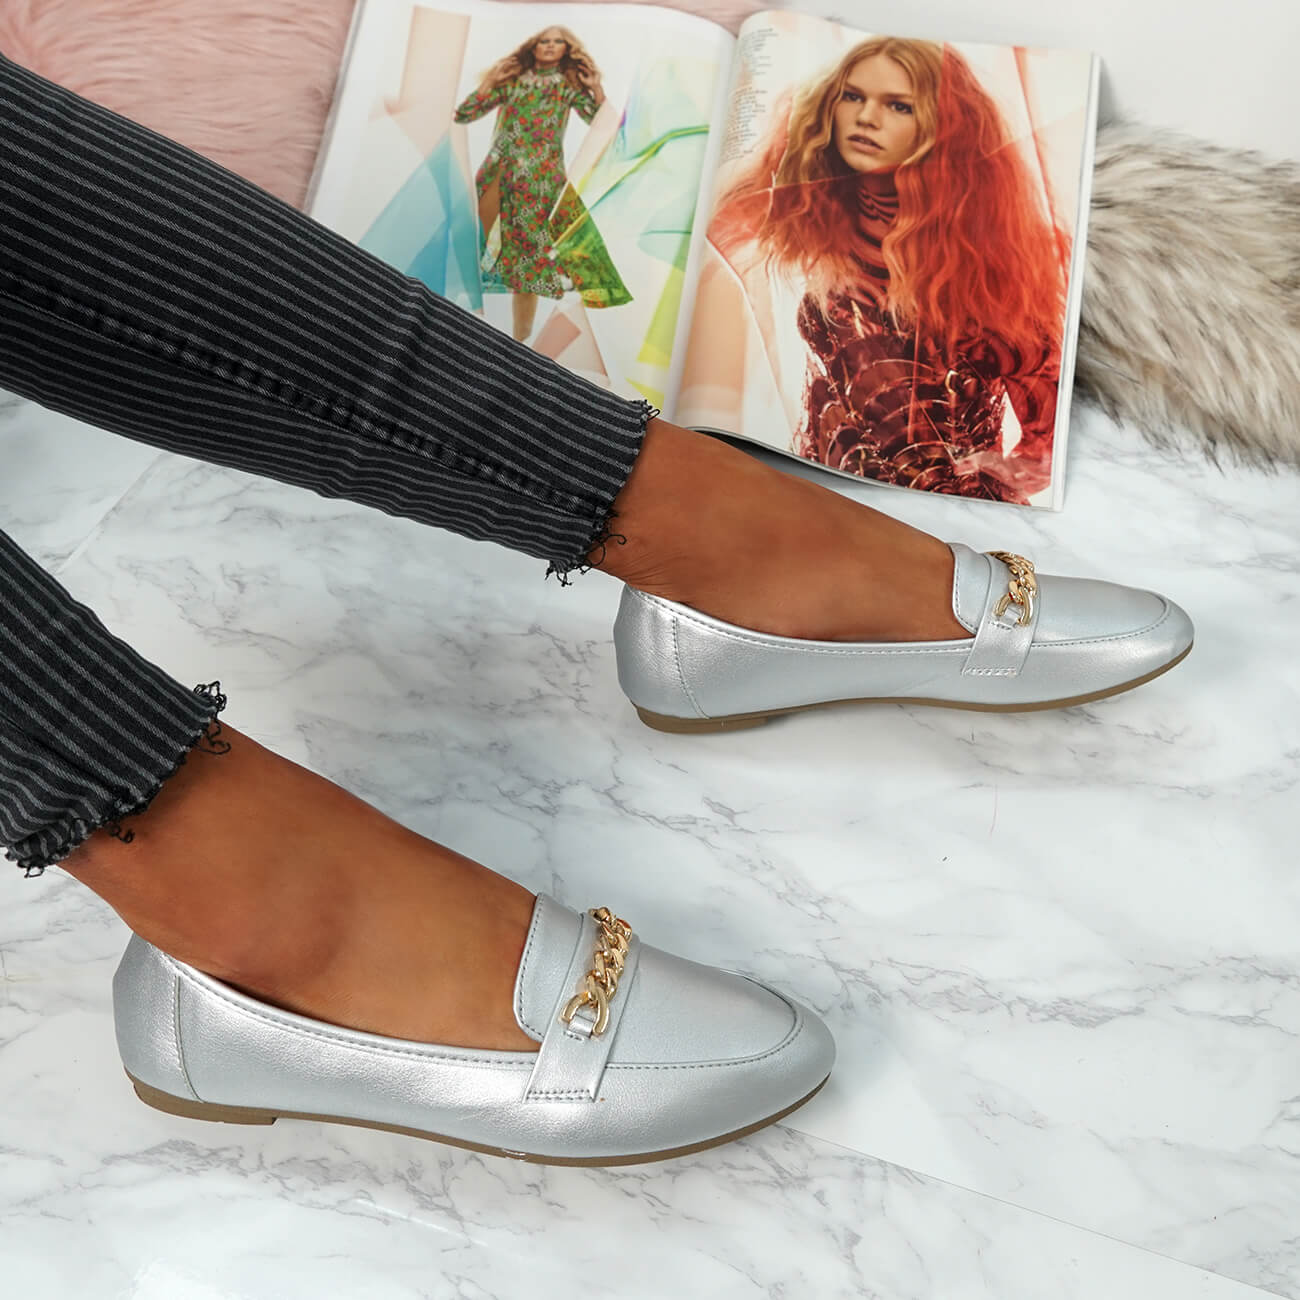 WOMENS-LADIES-CHAIN-SLIP-ON-BALLERINA-LOAFERS-BALLET-DOLLY-PUMPS-SHOES-SIZE thumbnail 40